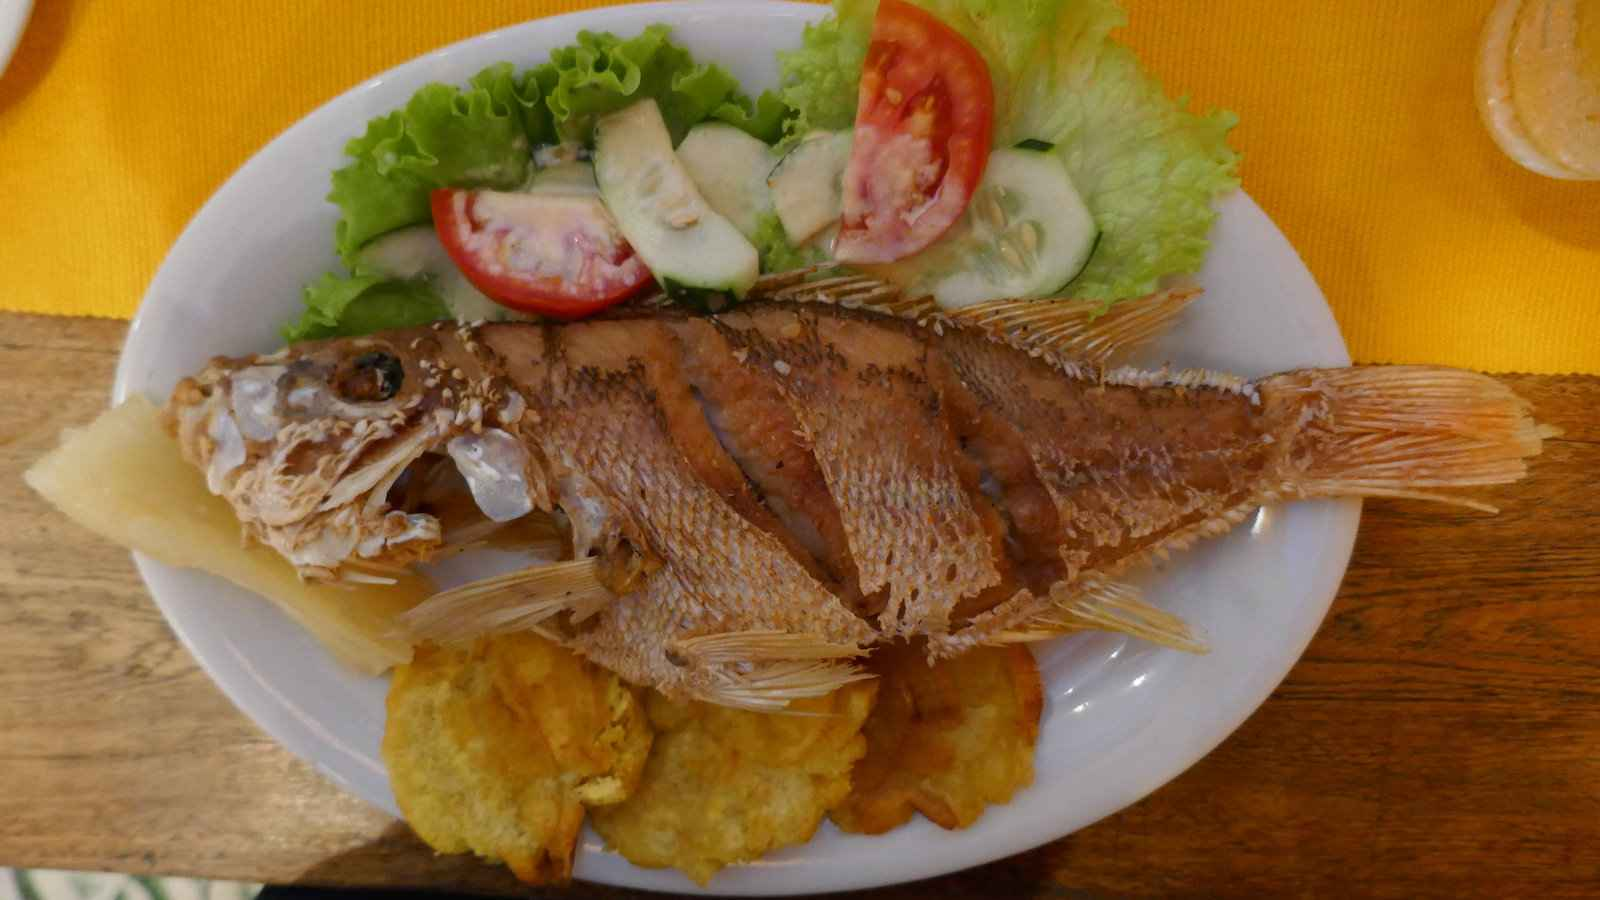 Instead of fish and chips, in Colombia you get pescado frito, a delicious whole fried fish